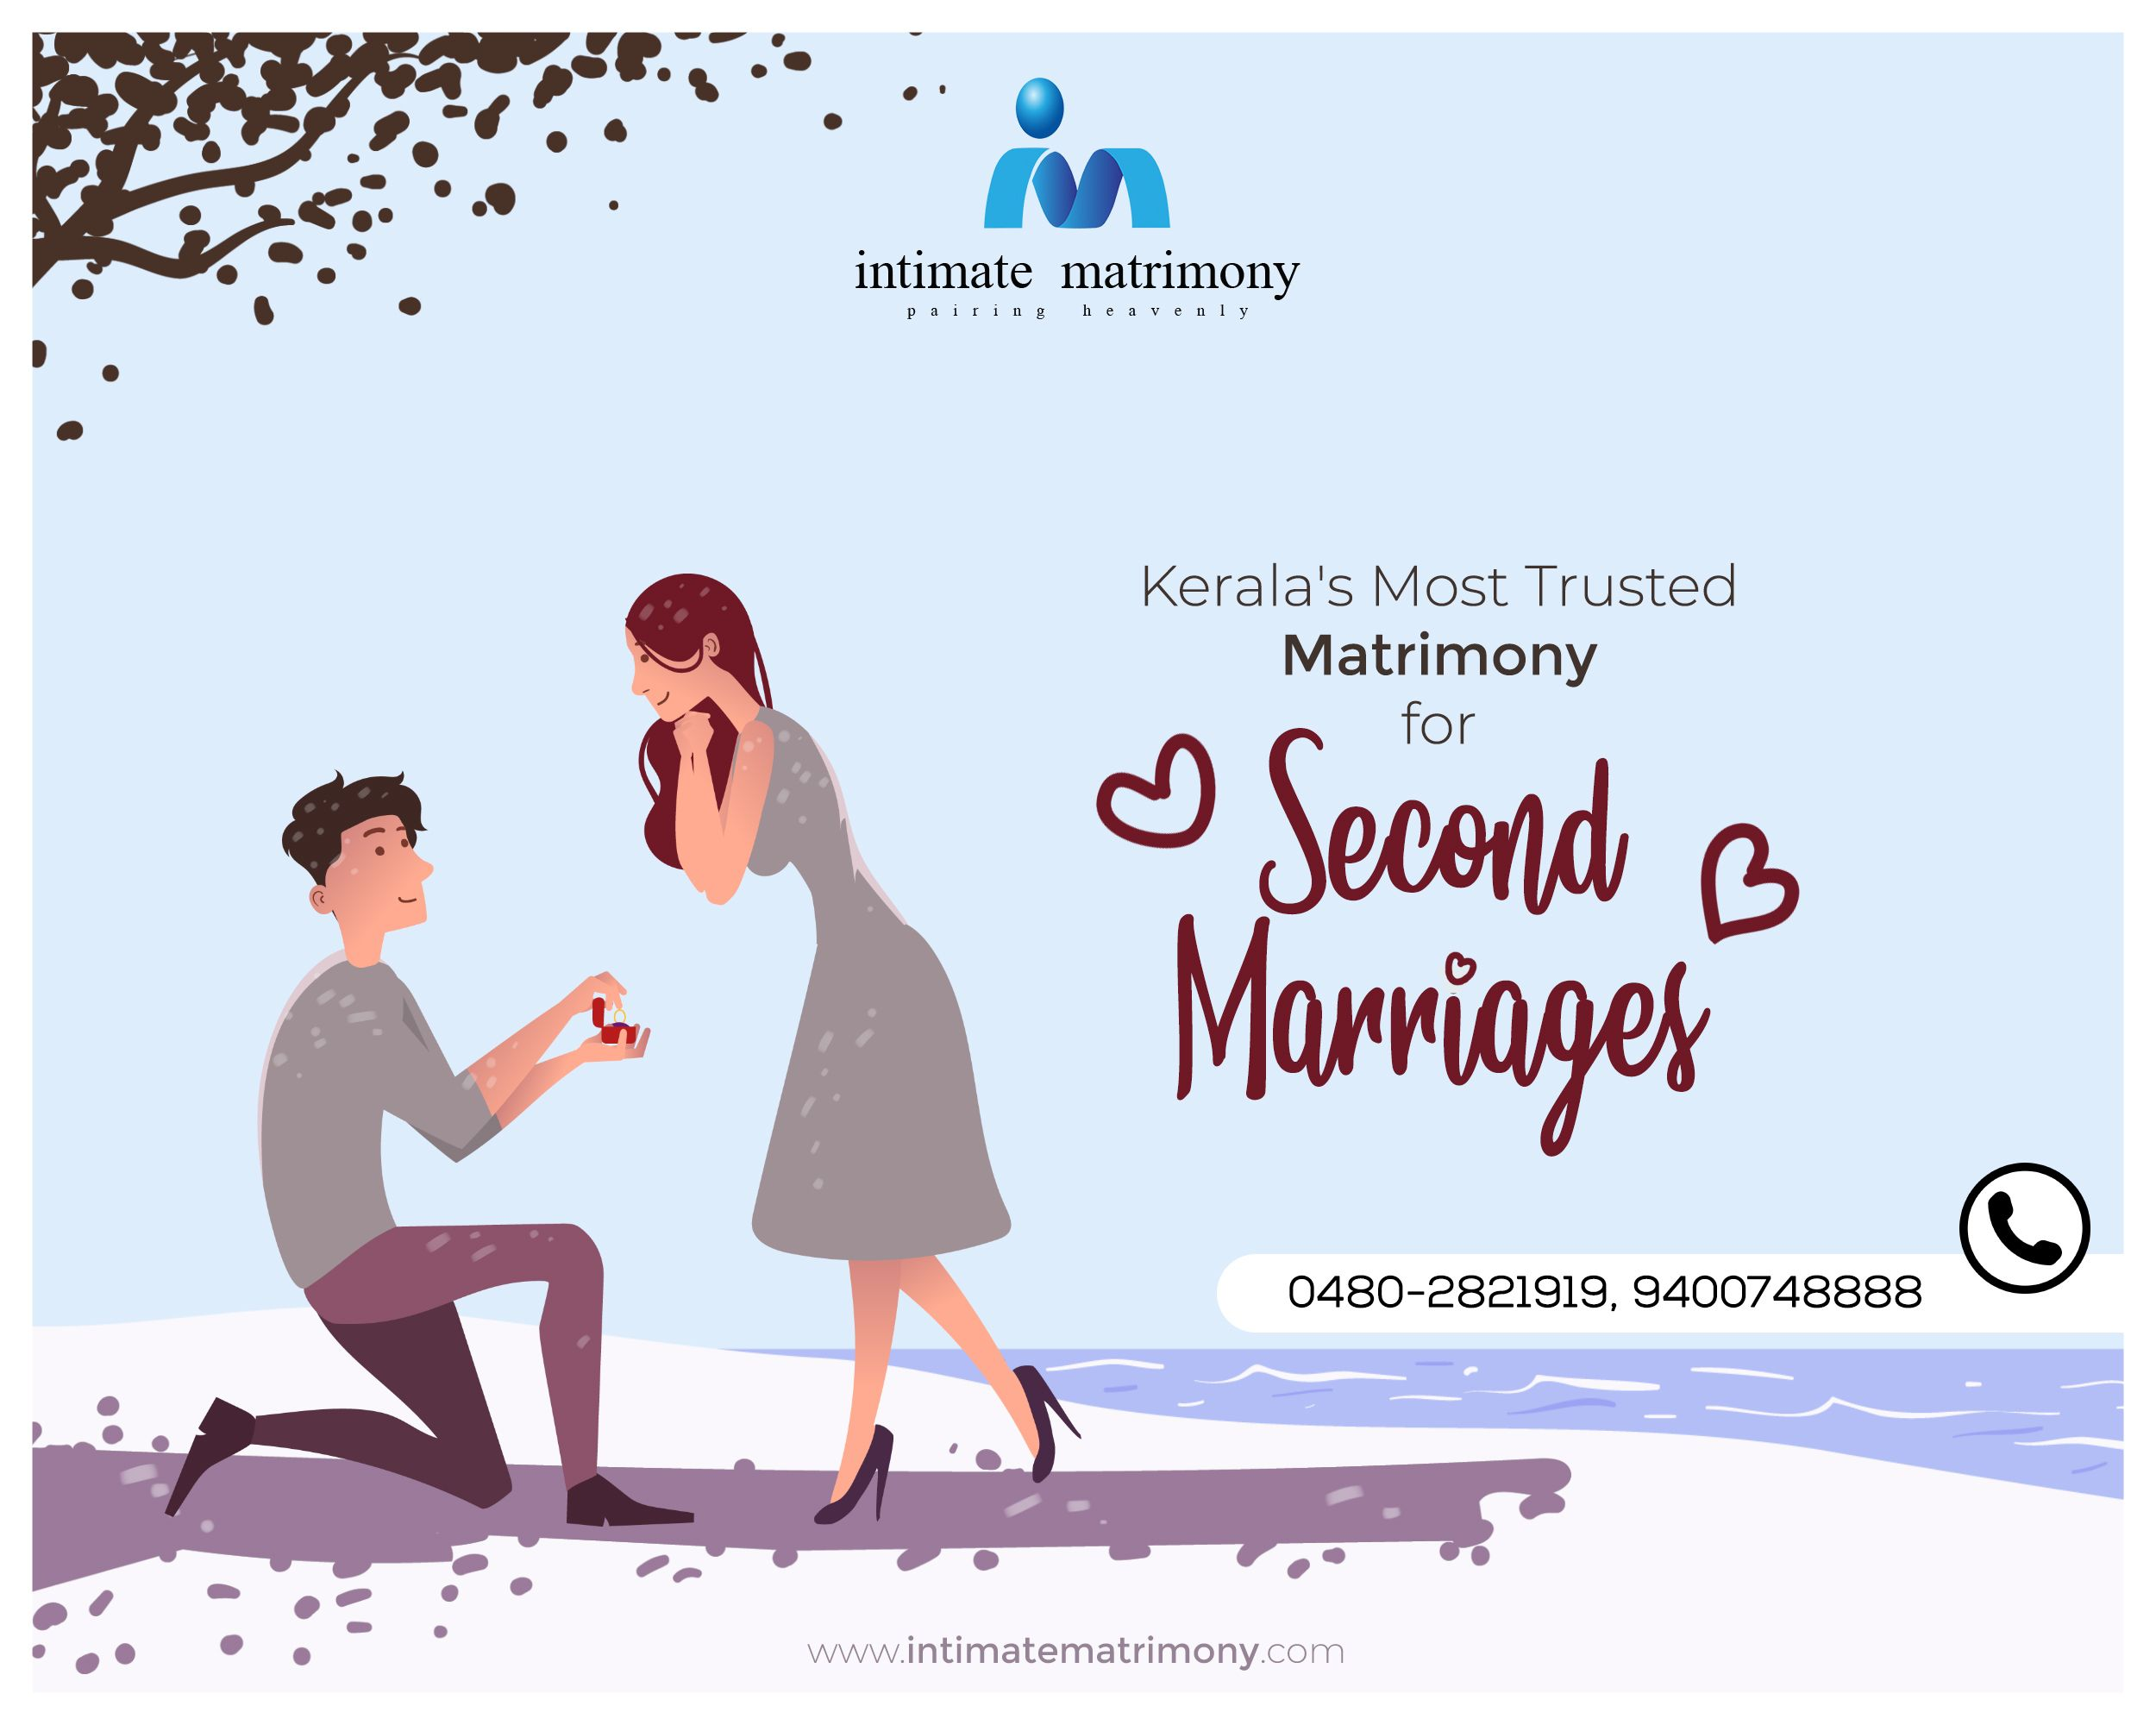 Intimate Matrimony - Most Trusted Matrimonial site for